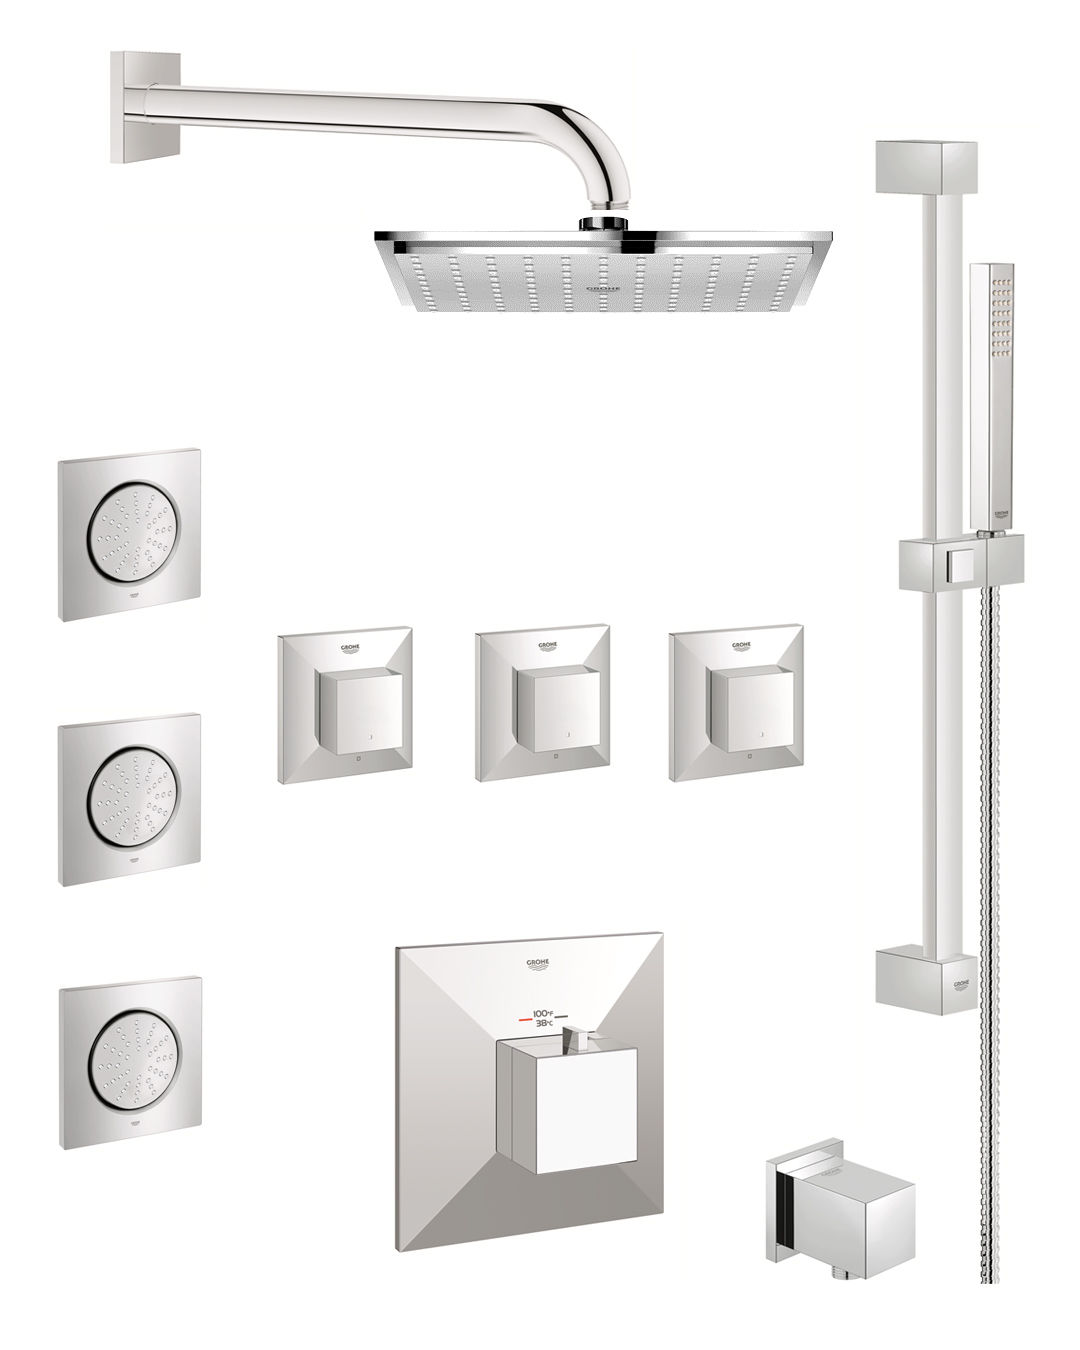 Grohe Gss Allure Cth 08 000 Starlight Chrome Allure Brilliant Thermostatic Shower System With Rain Shower Head Handshower Slide Bar Bodysprays And Volume Controls All Valves Included Faucetdirect Com